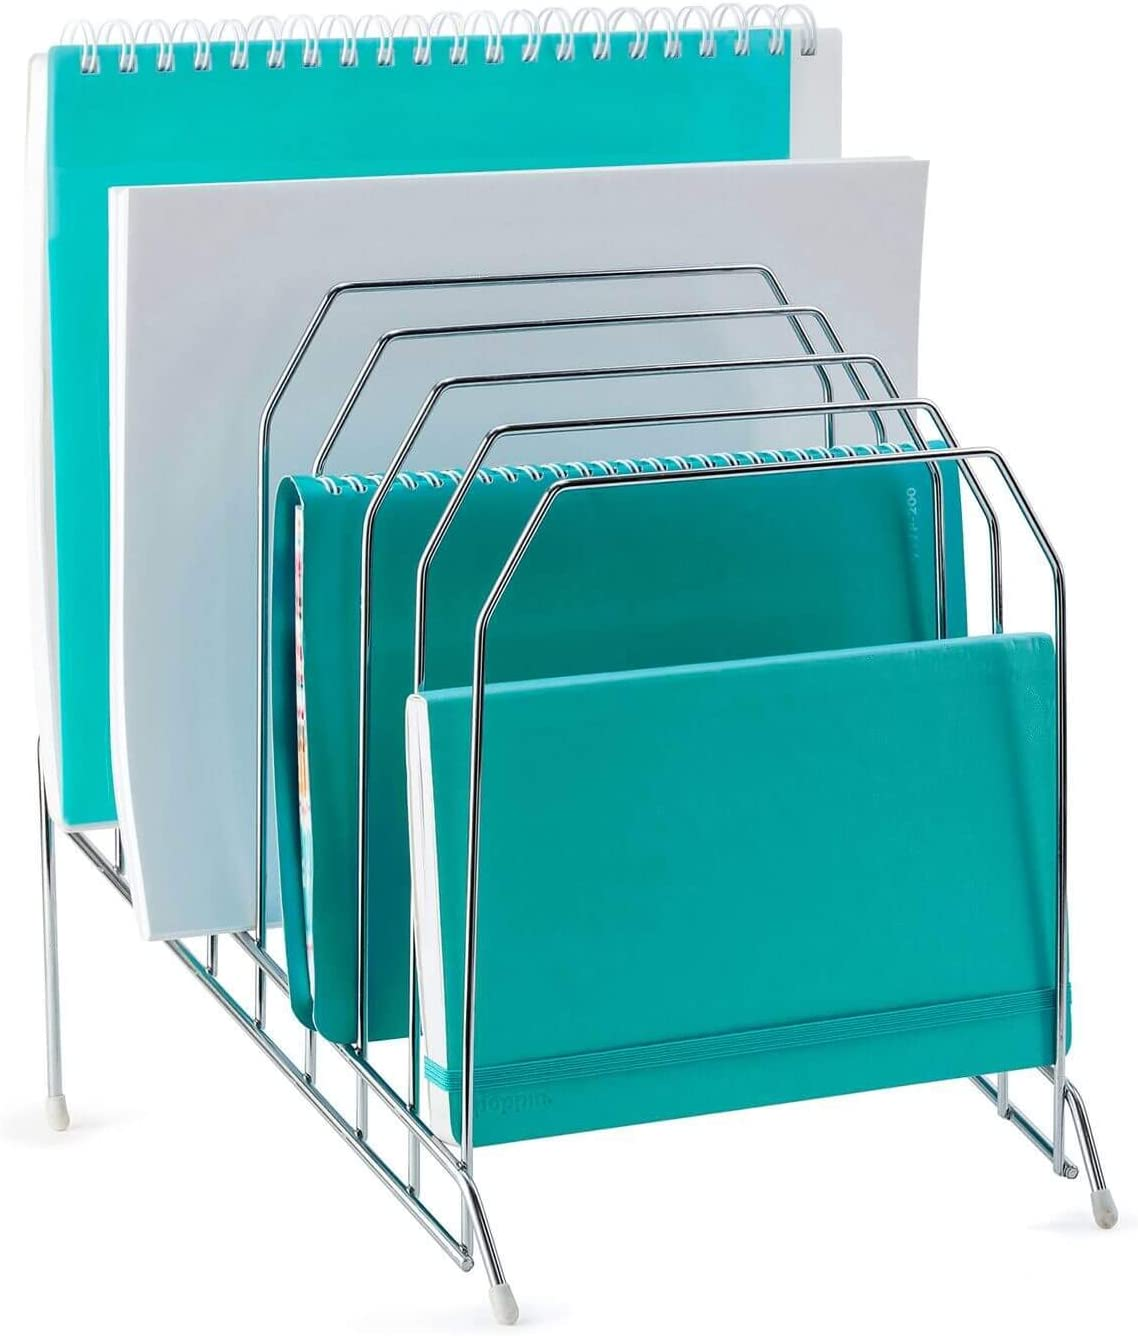 Mindspace Multi Step File Organizer | Stackable Letter Tray | File Holder | The Wire Collection, Silver